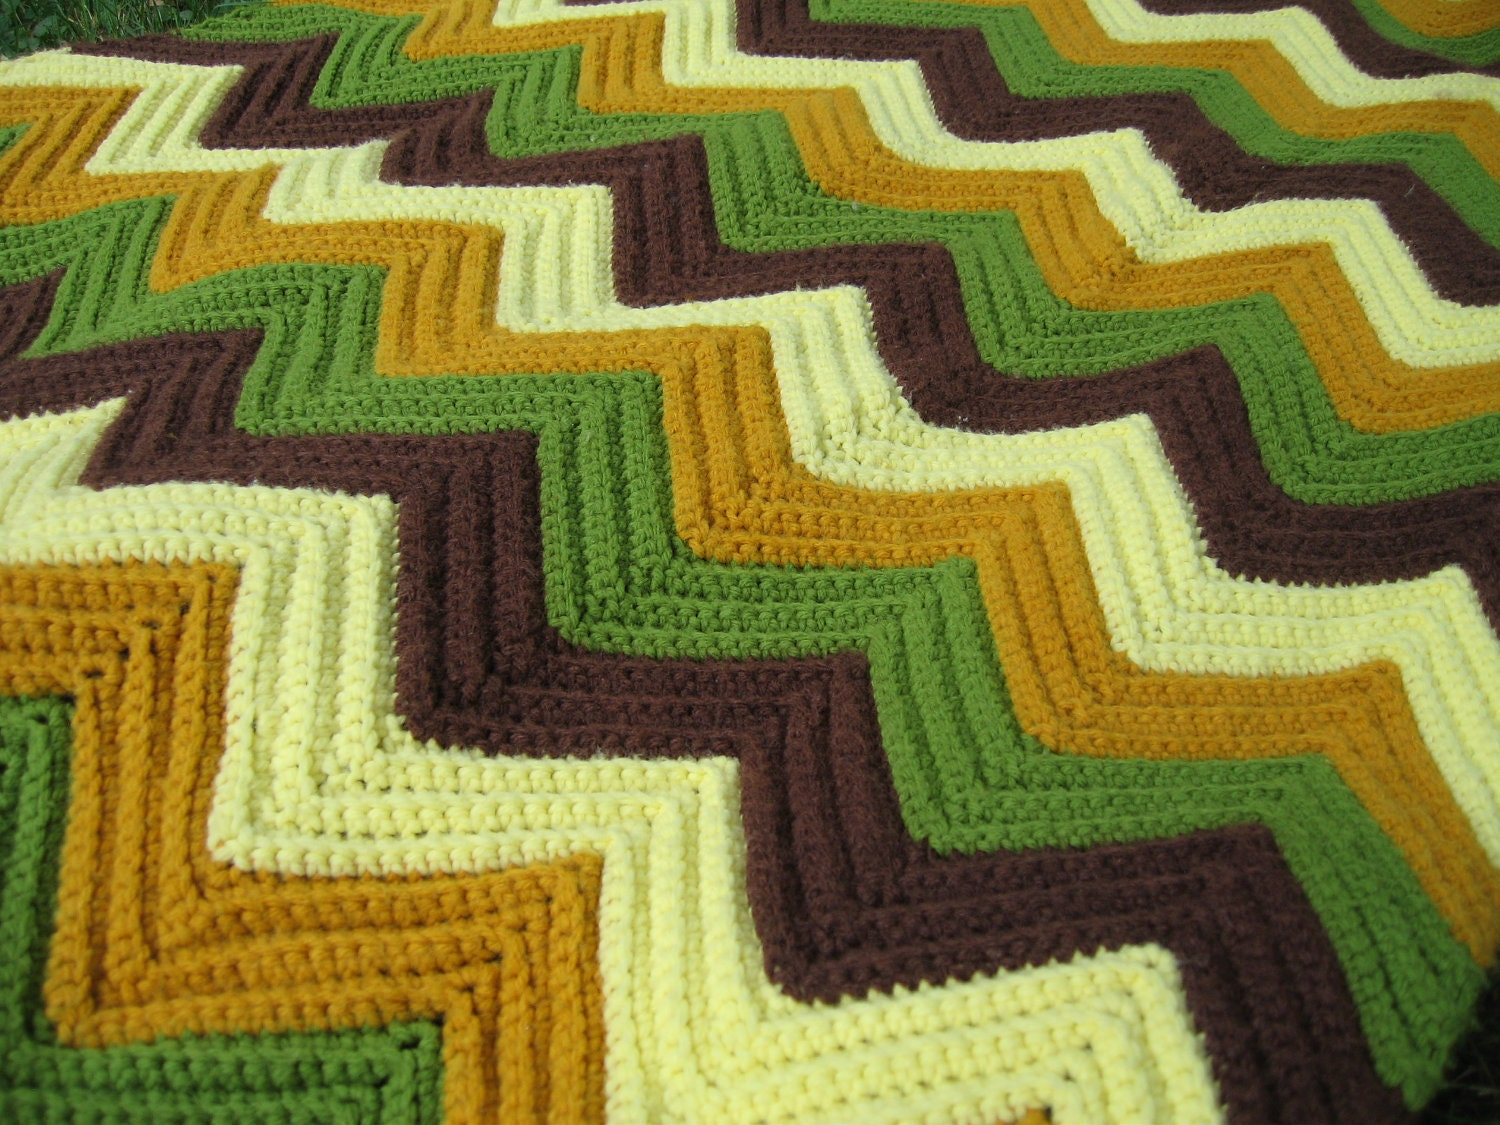 Crochet Patterns Zig Zag Blanket : Vintage Crochet Afghan Blanket Zig-Zag Pattern by SunandPearl